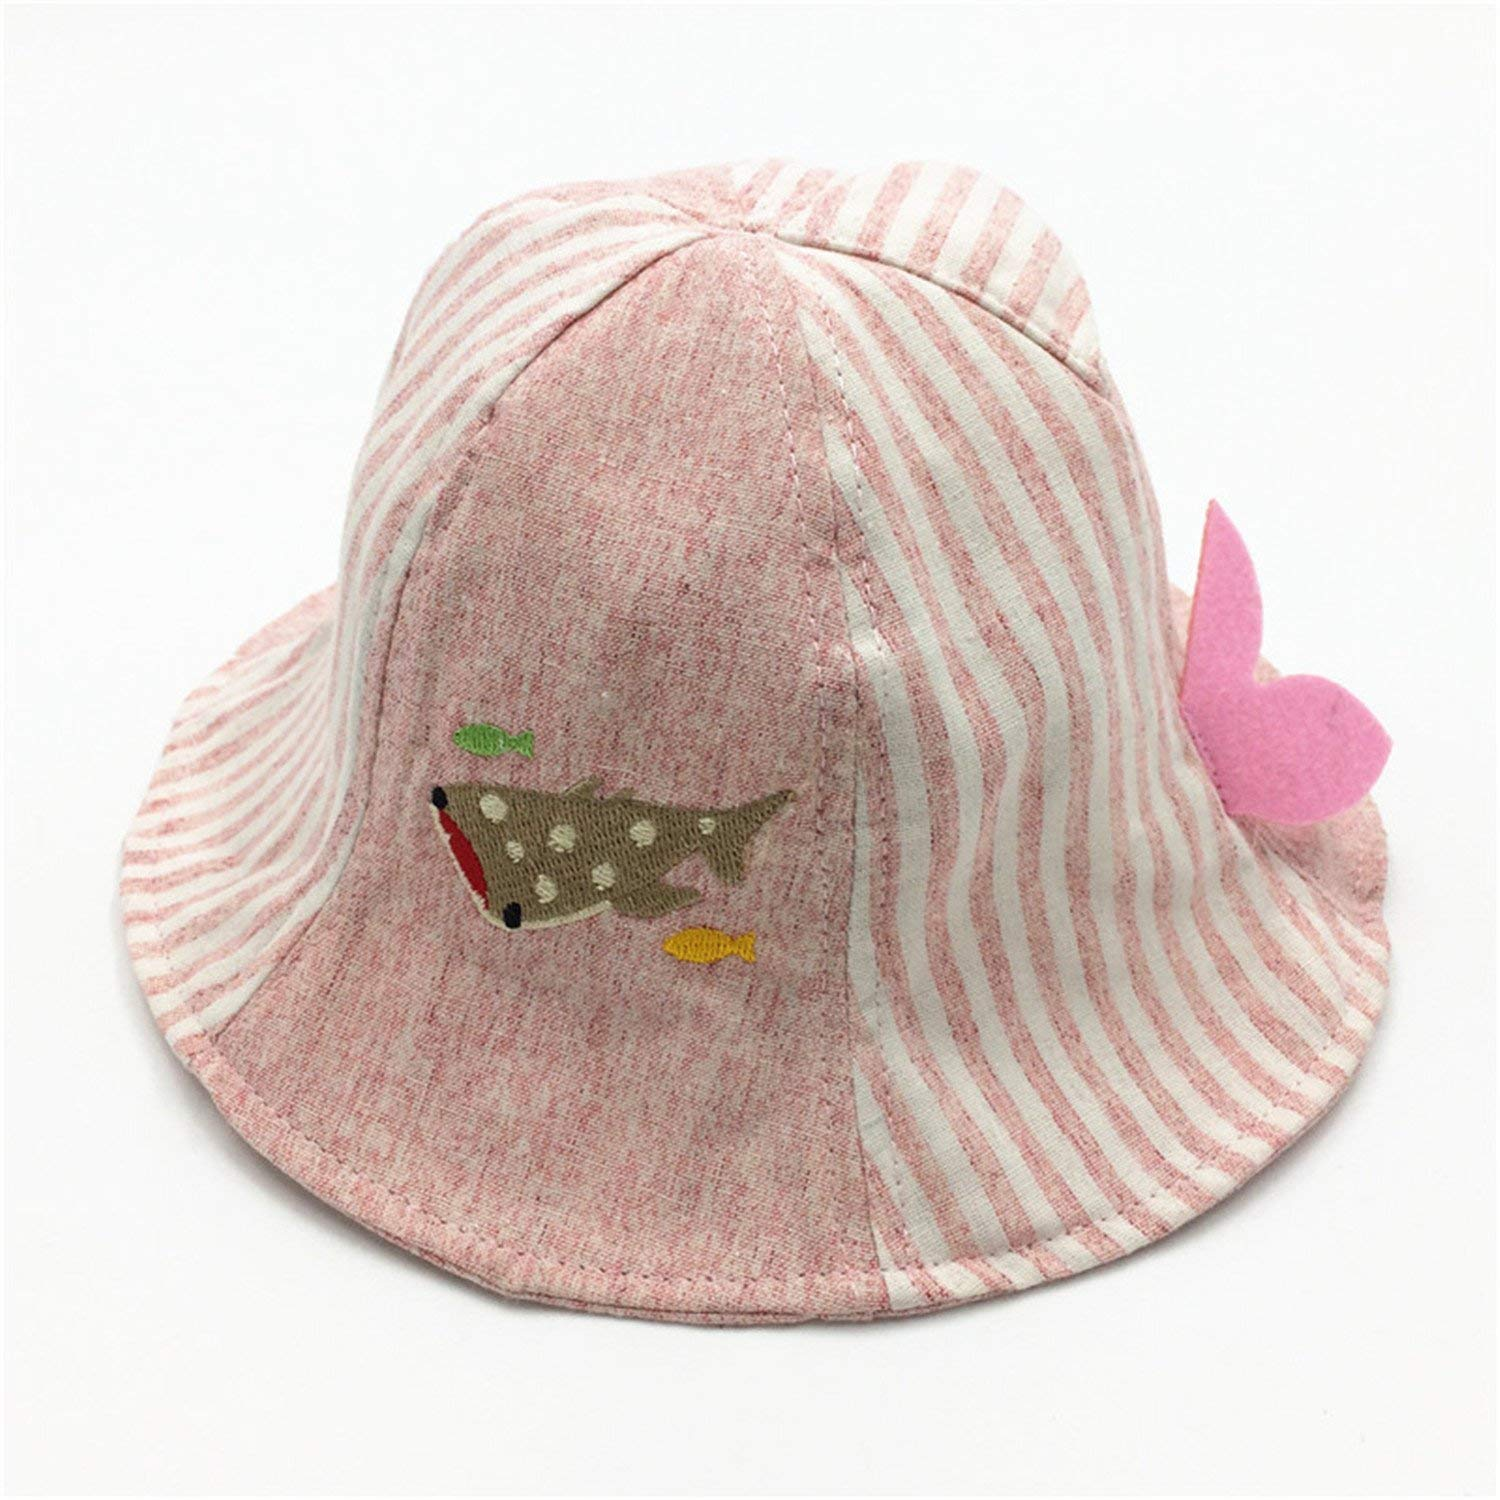 New Spring Summer Baby Girls Sun Hat Cotton Baby Hat Kids Boys Child Caps Alphabet Striped Baby Striped Fisherman Hat Outdoor